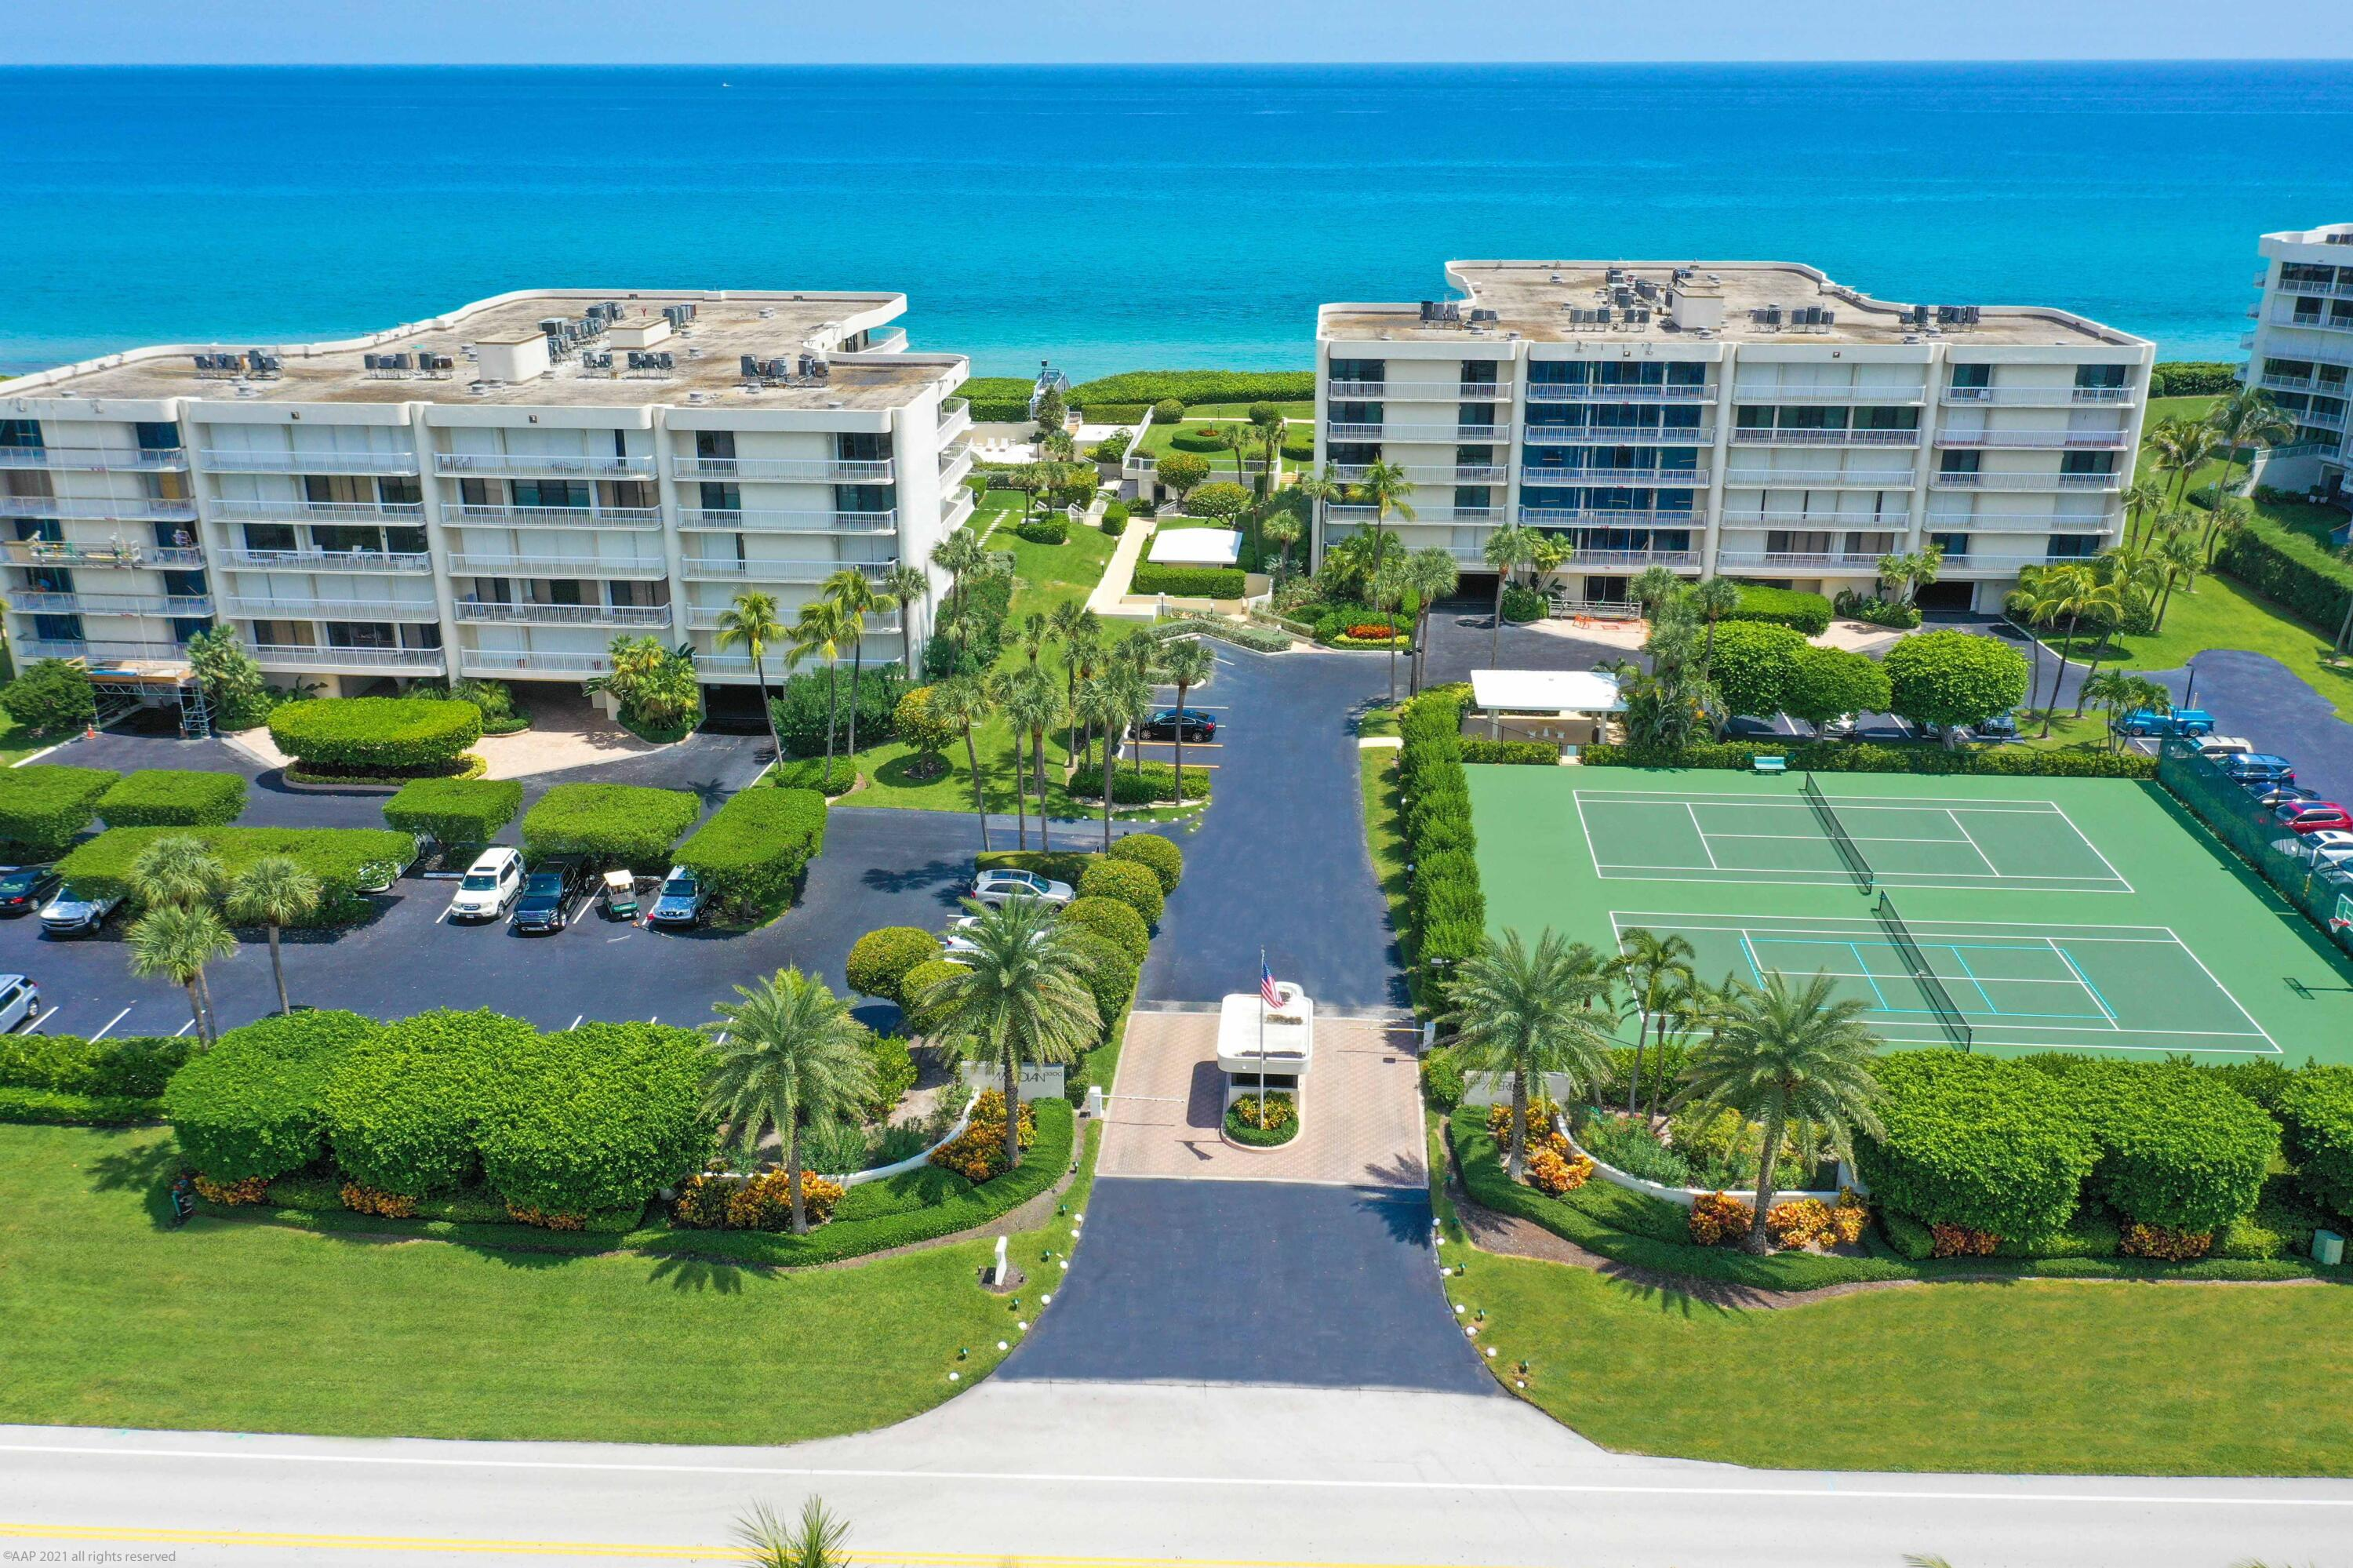 Large corner unit with expansive views of both the Ocean and the Intracoastal. Unique design allows for two balconies and both East and West exposure from the Master bedroom. Open floor plan brings together a large Living Room, Dining room, and Den, all surrounded by Impact doors coated in white on the inside of the unit. Remote window shades, wet bar, and built-ins complete the upgrades in this luxury Oceanfront home. The building includes a manned security gate, full-time manager, tennis courts, heated pool and spa, fitness center, large community room, garage parking, and more. Completely furnished and ready to move in.1st 1/4 maintenance is $6,225.78 which includes reserves.  1st 1/4 maintenance is $6,225.78 which includes reserves. The 2nd, 3rd & 4th 1/4 maintenance is $4,028.45 each.